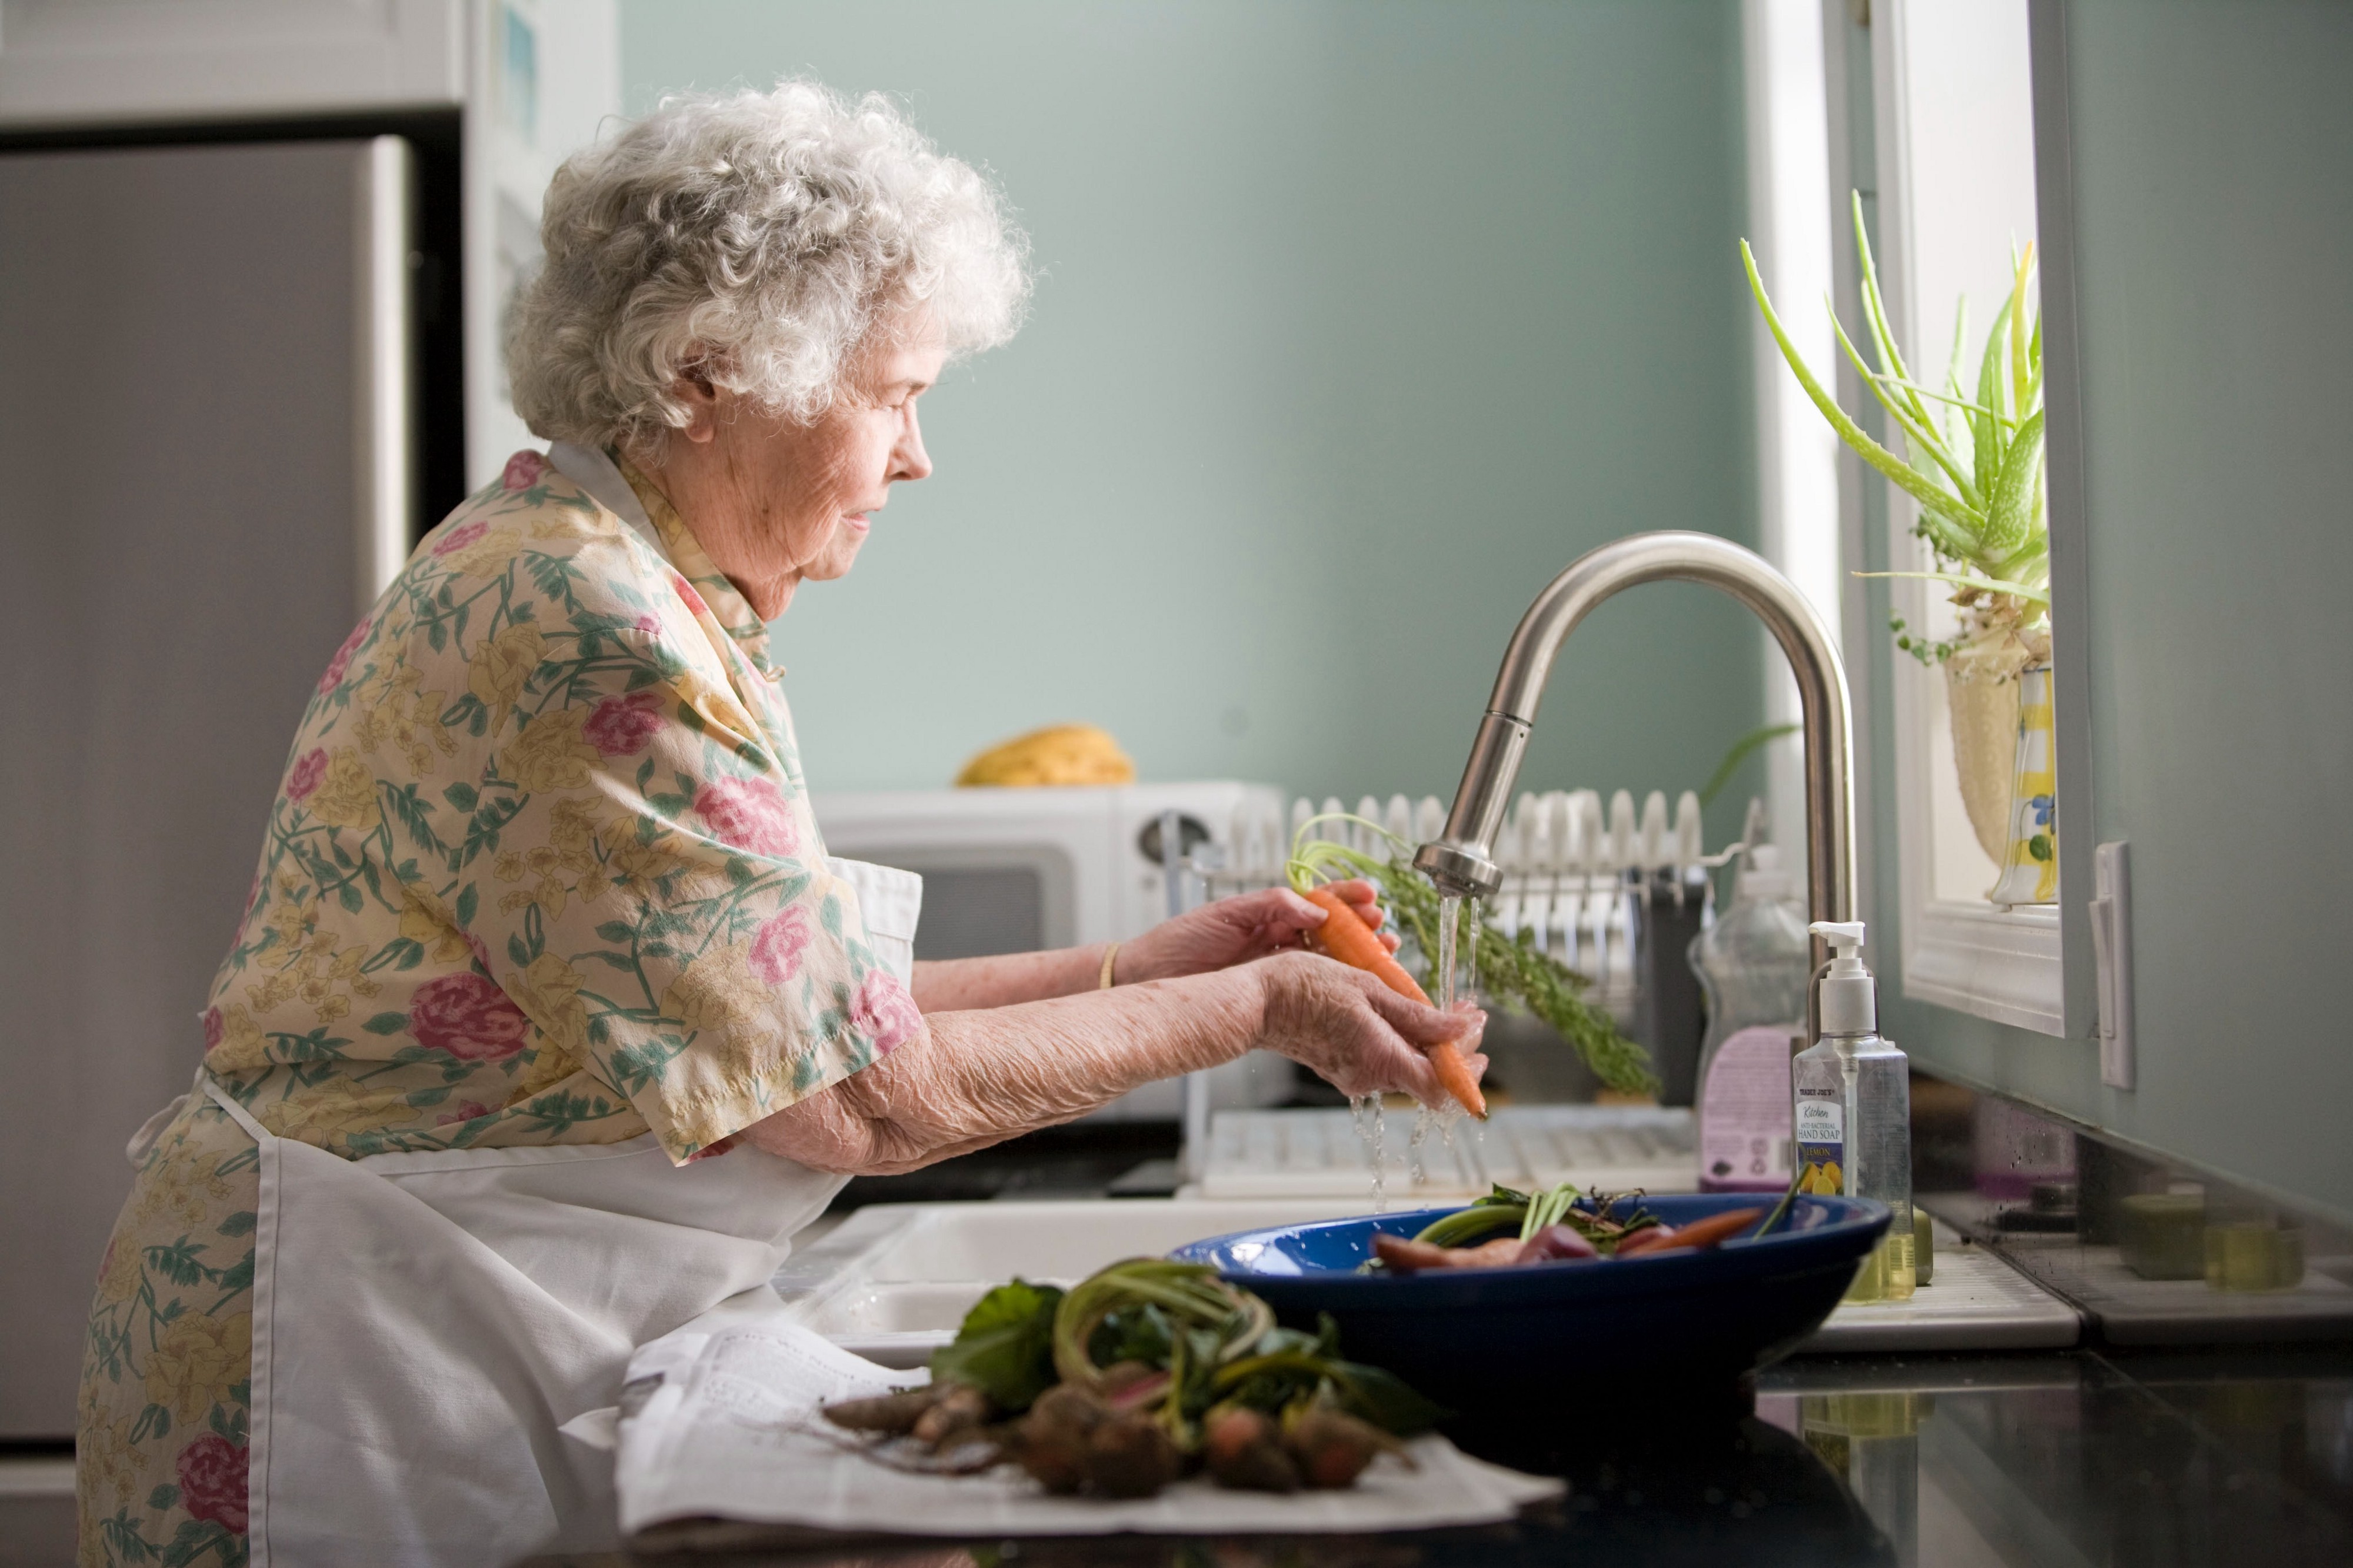 Grandmotherly woman washing vegetables at the kitchen sink.